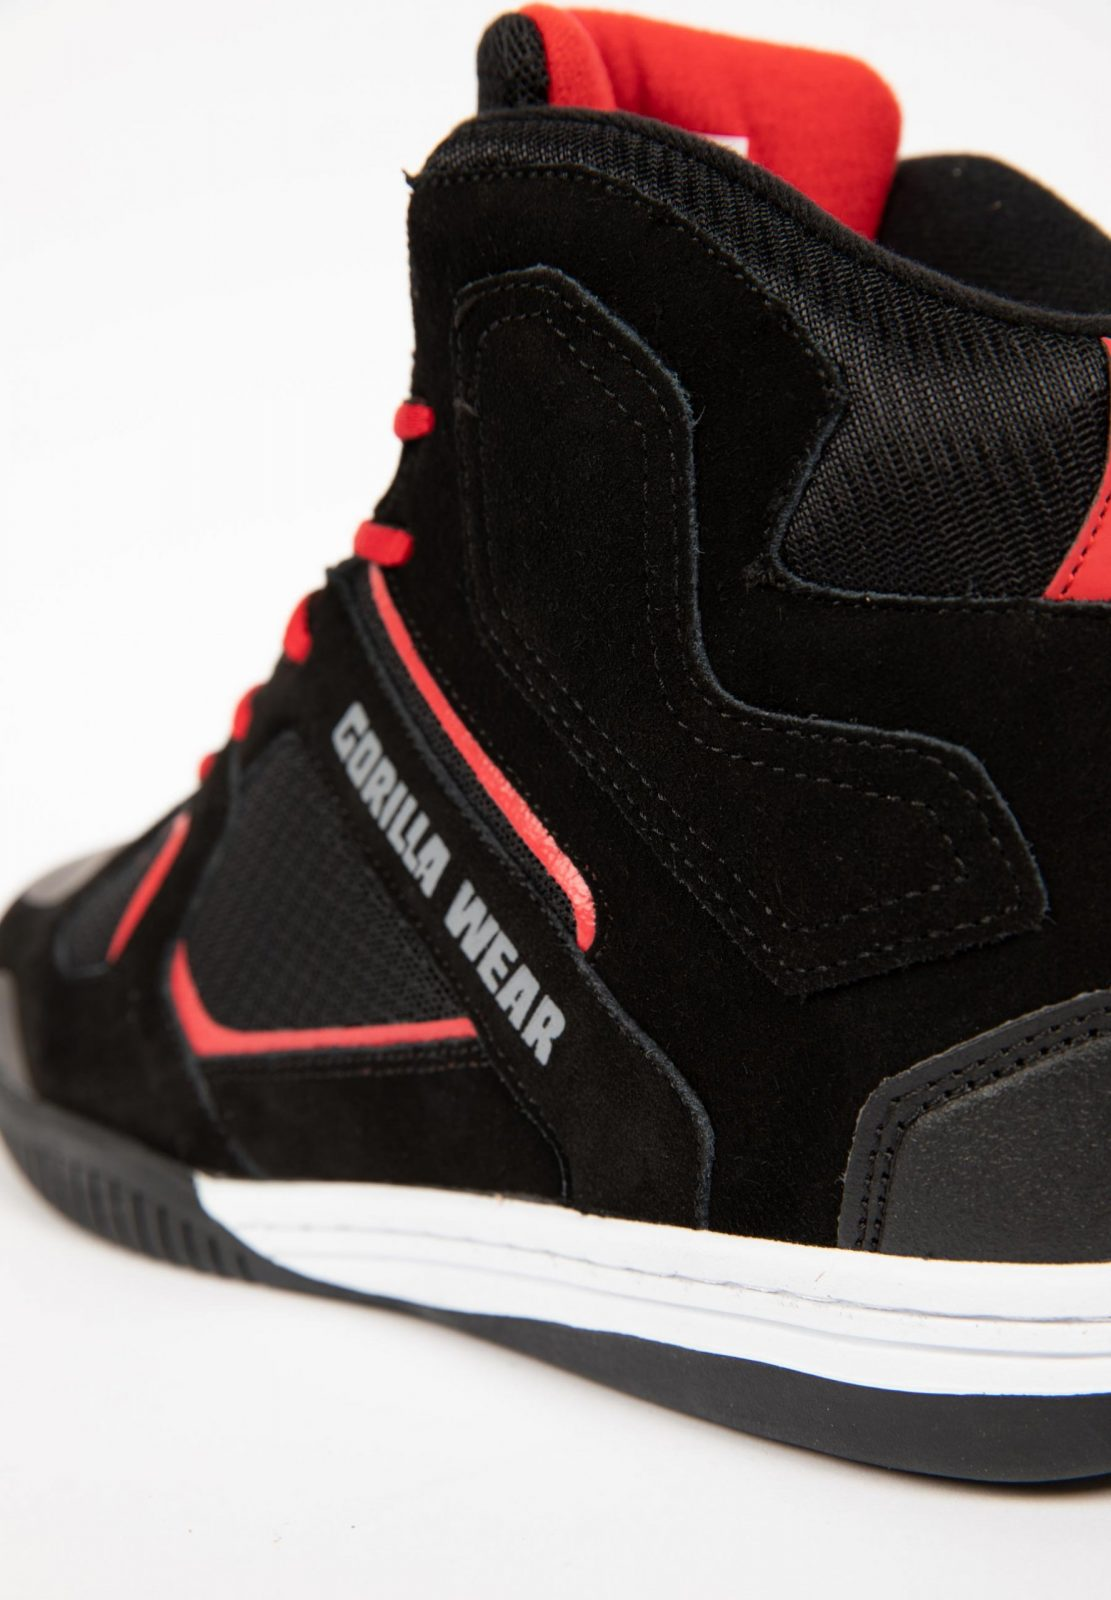 90009950-troy-high-tops-black-red-10